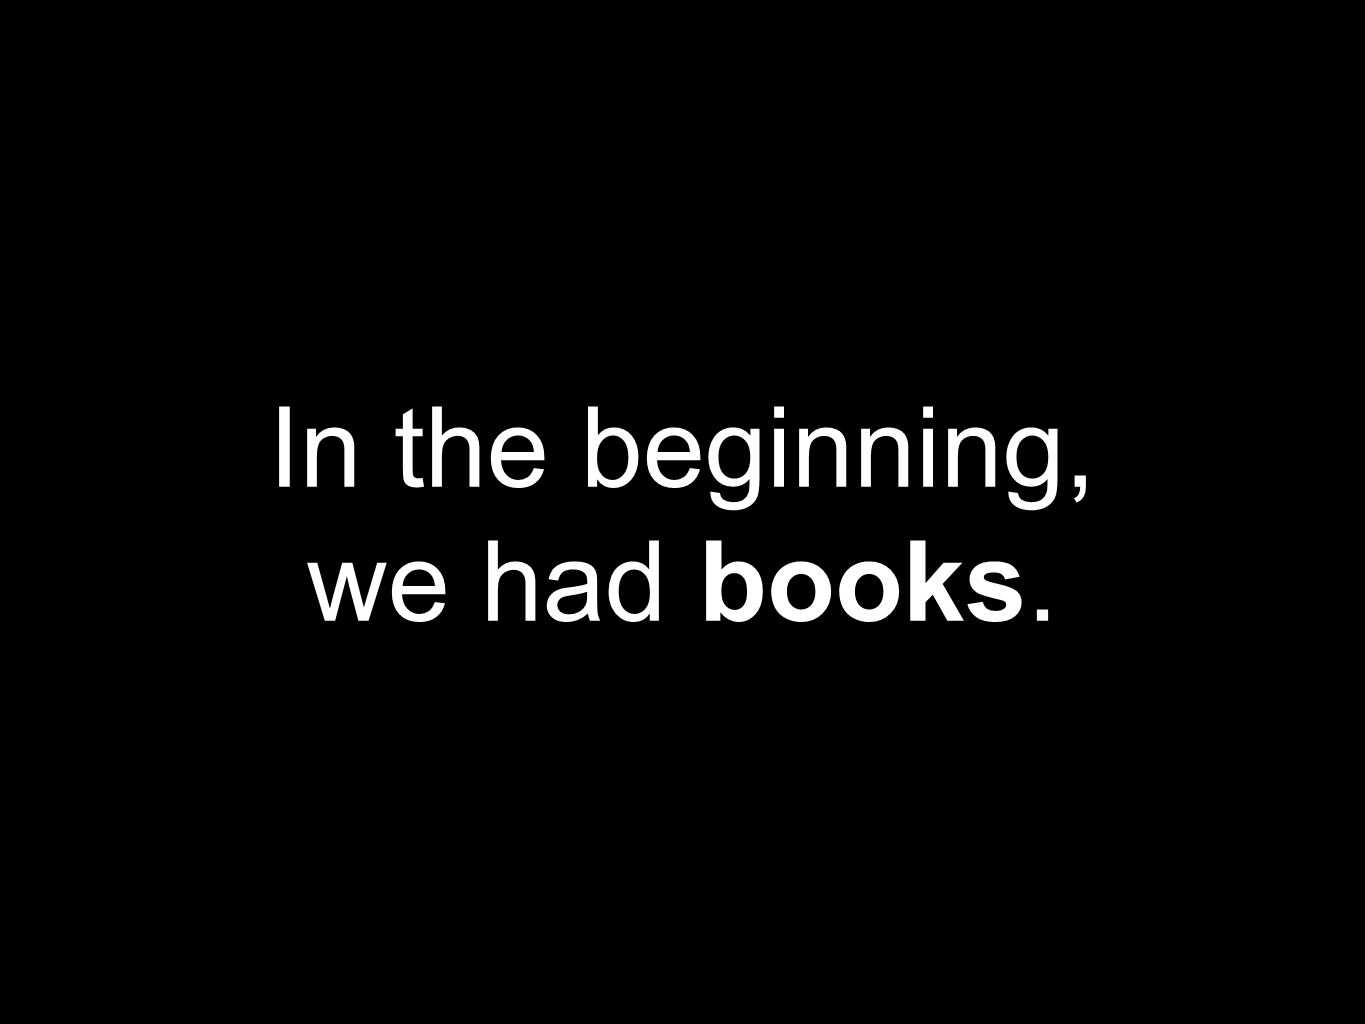 In the beginning, we had books.